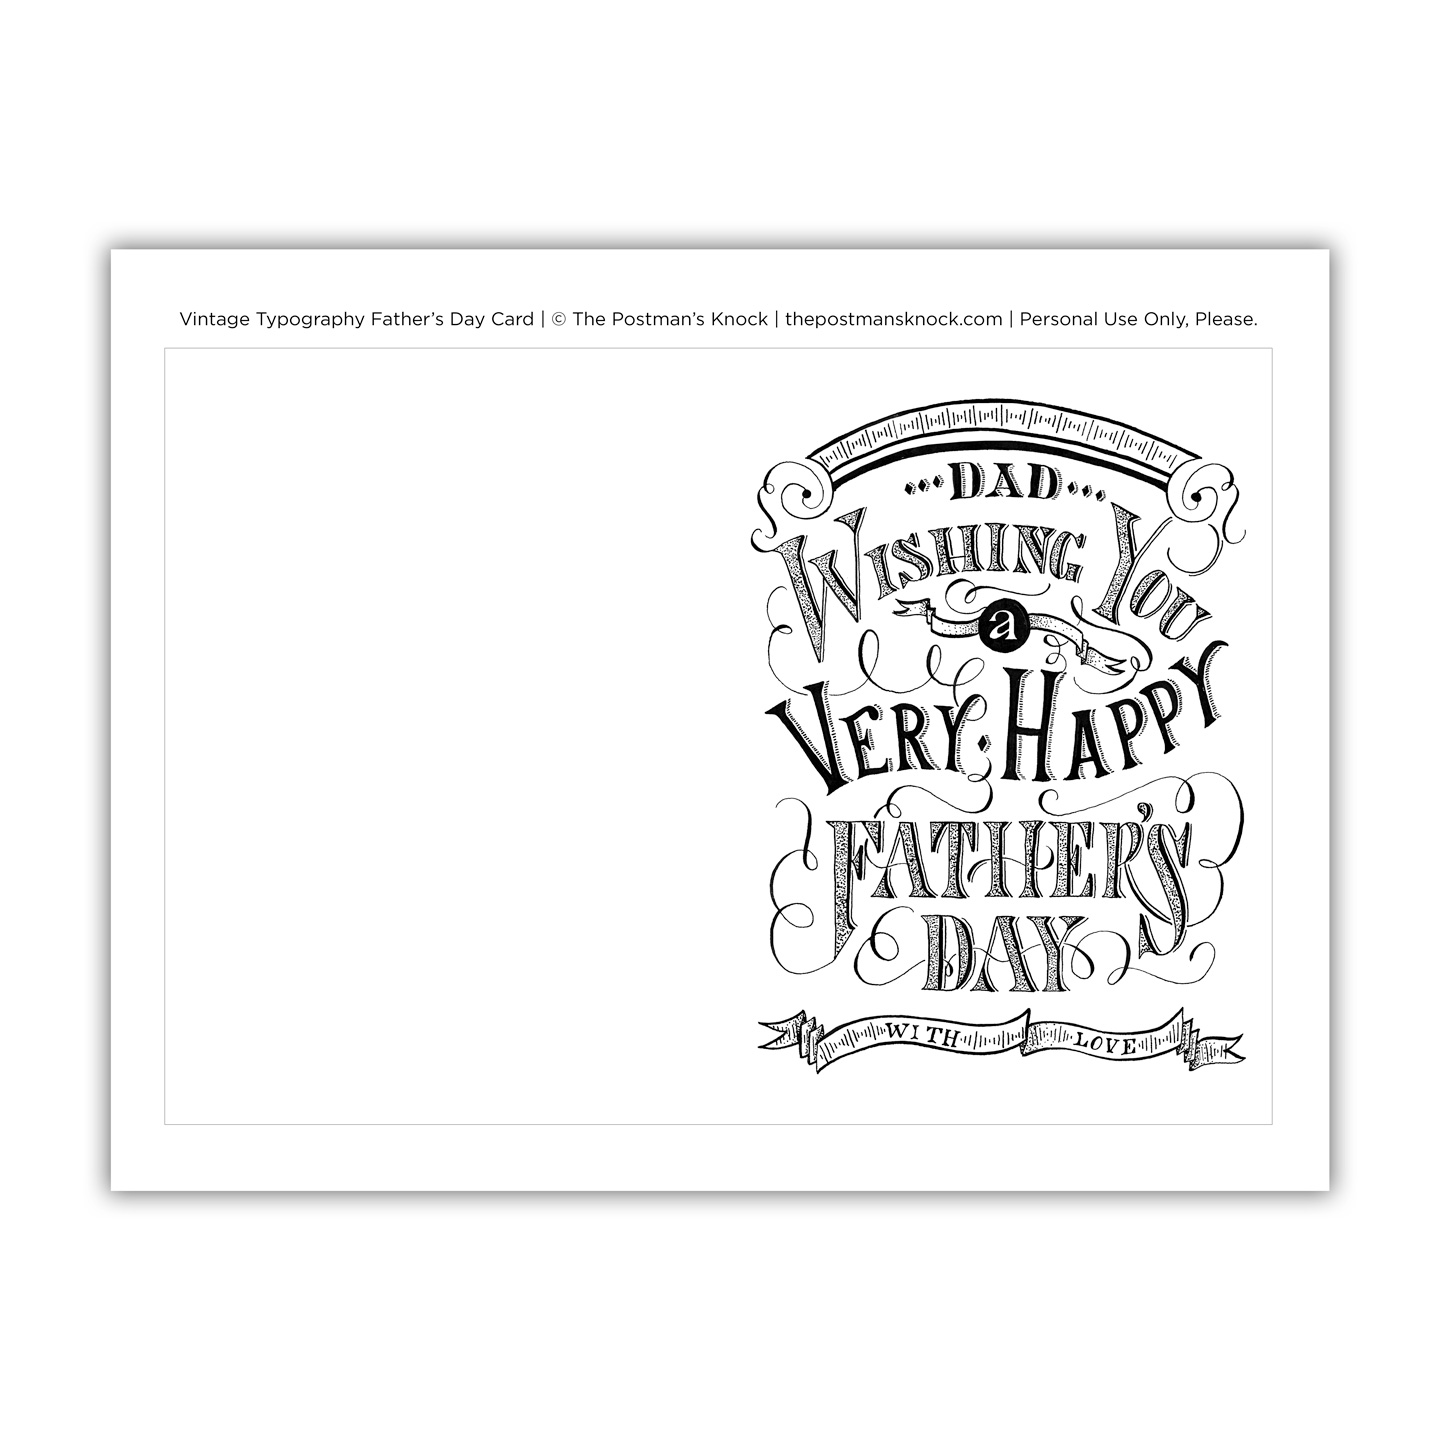 picture regarding Father's Day Card Printable referred to as Typical Typography Fathers Working day Card